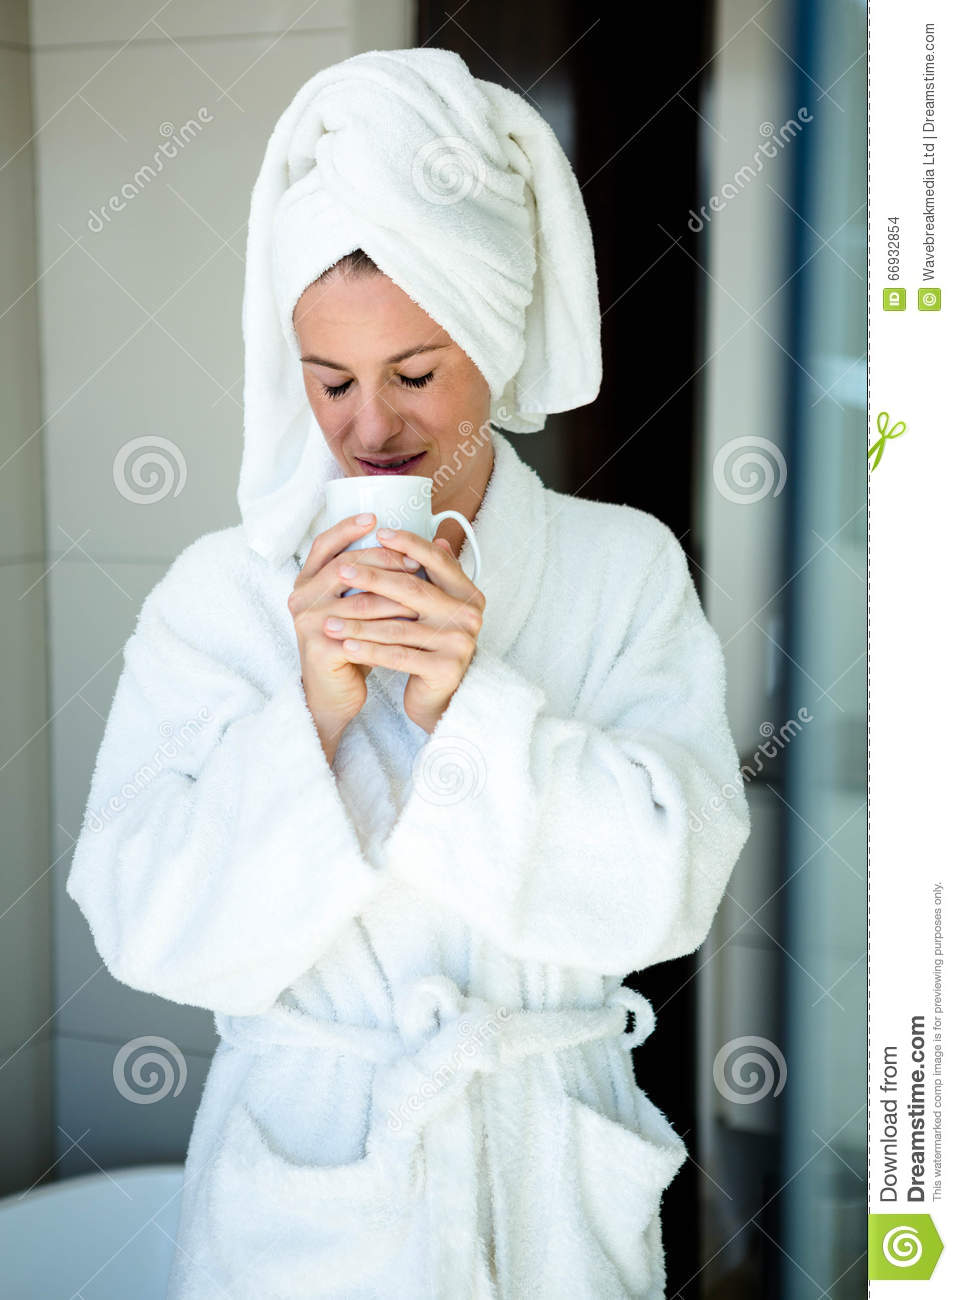 Woman In A Dressing Gown Drinking A Cup Of Coffee Stock Photo ...